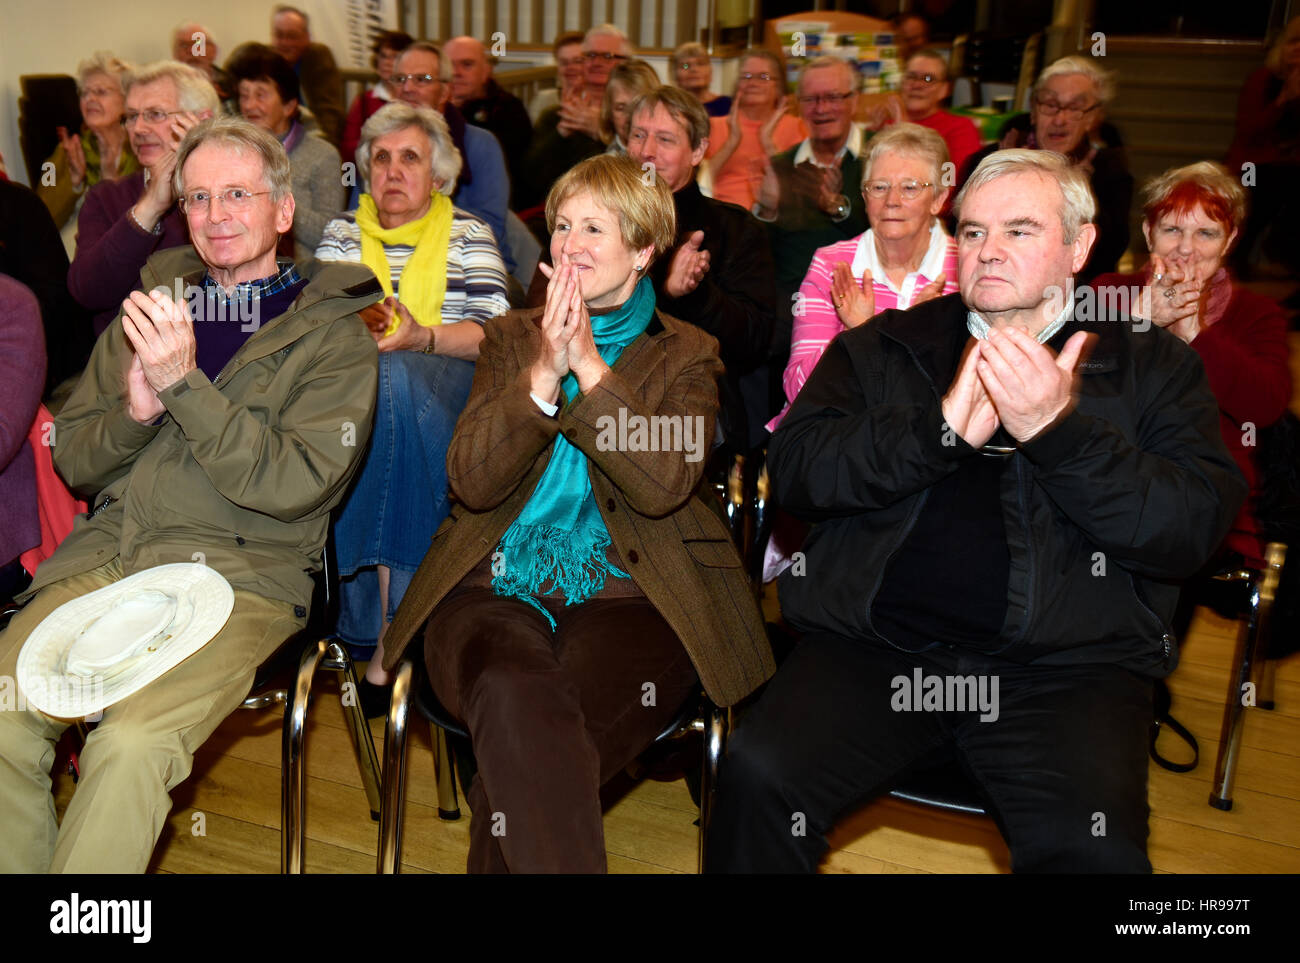 Audience members showing their appreciation for the 1960s music being performed at a community event organised by - Stock Image